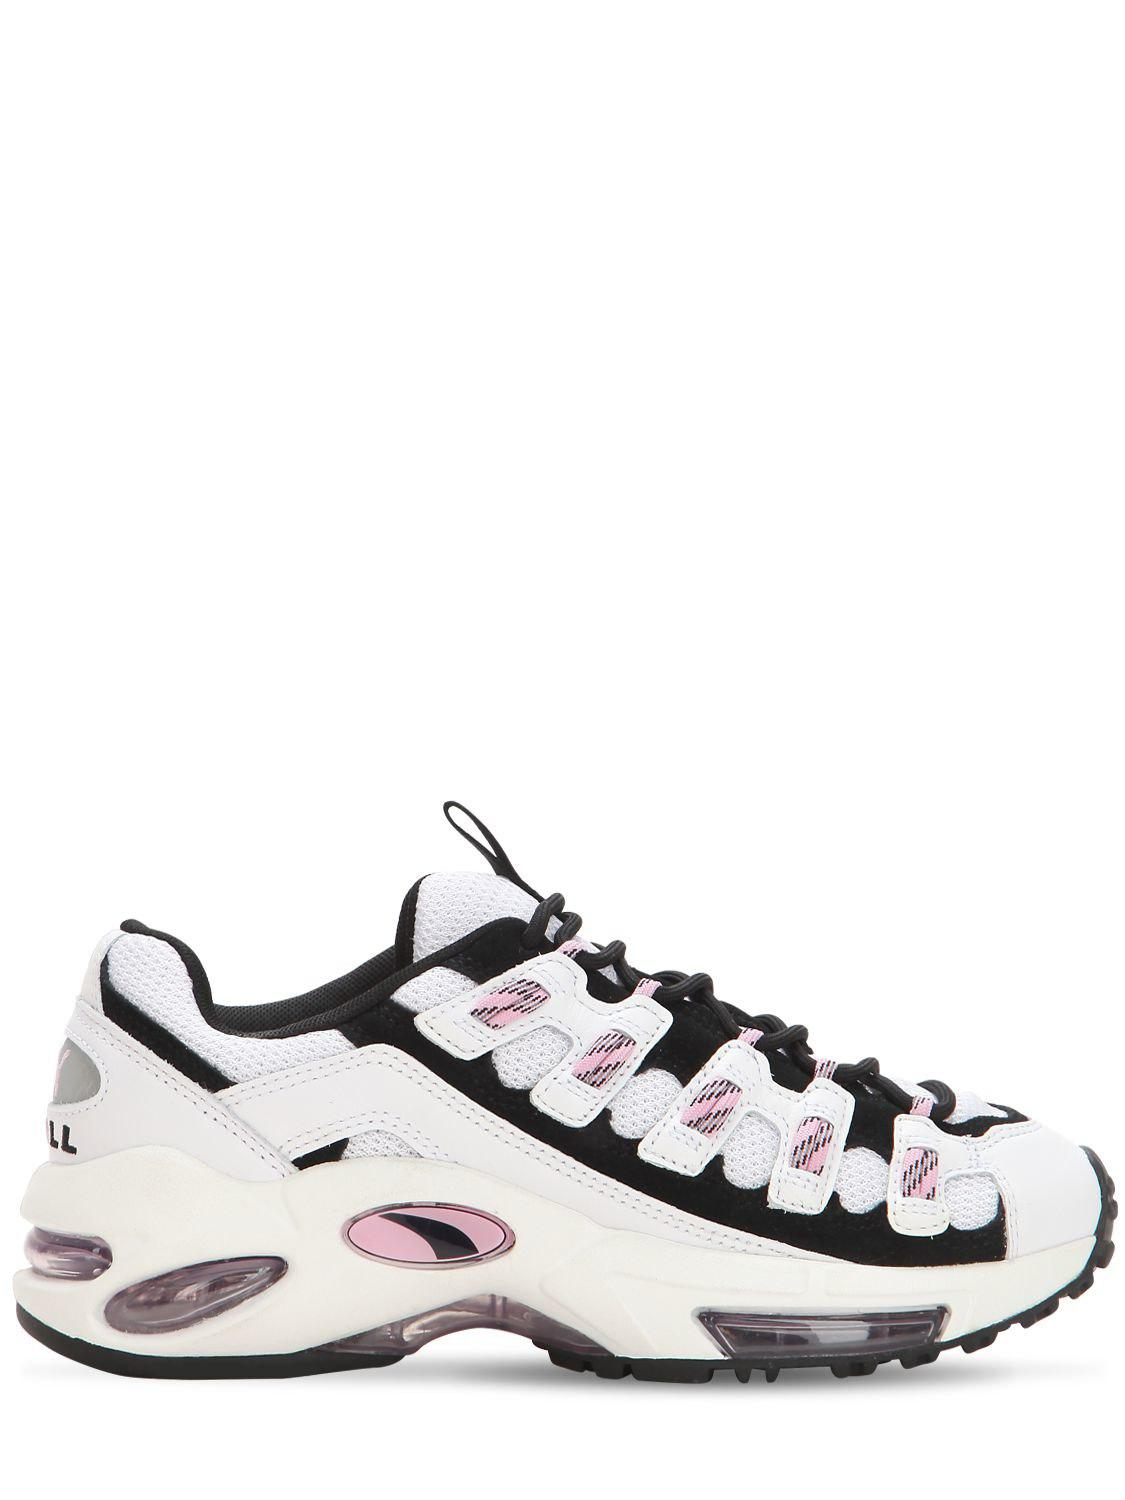 4dcadd614dcf0f Lyst - Puma Select Cell Endura Sneakers in White